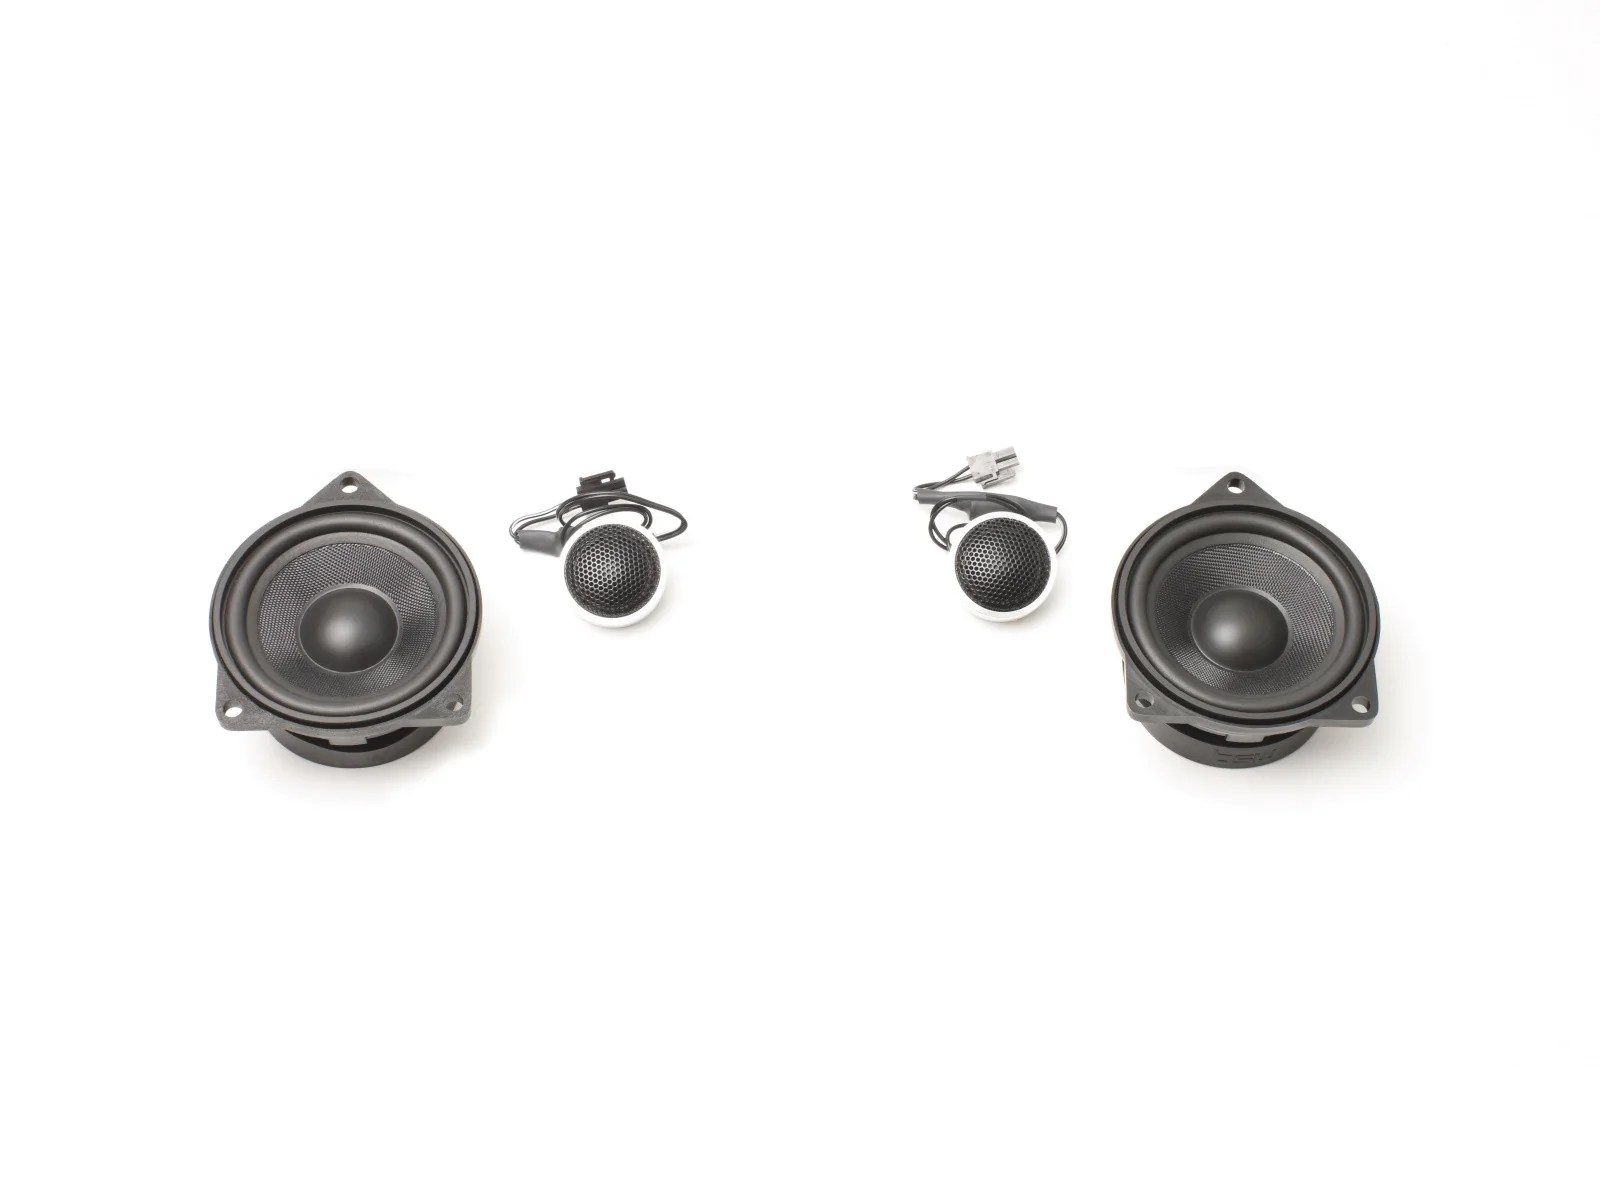 front sound stage for r55 r56 r57 r58 r59 mini cooper harman kardon [ 1600 x 1179 Pixel ]